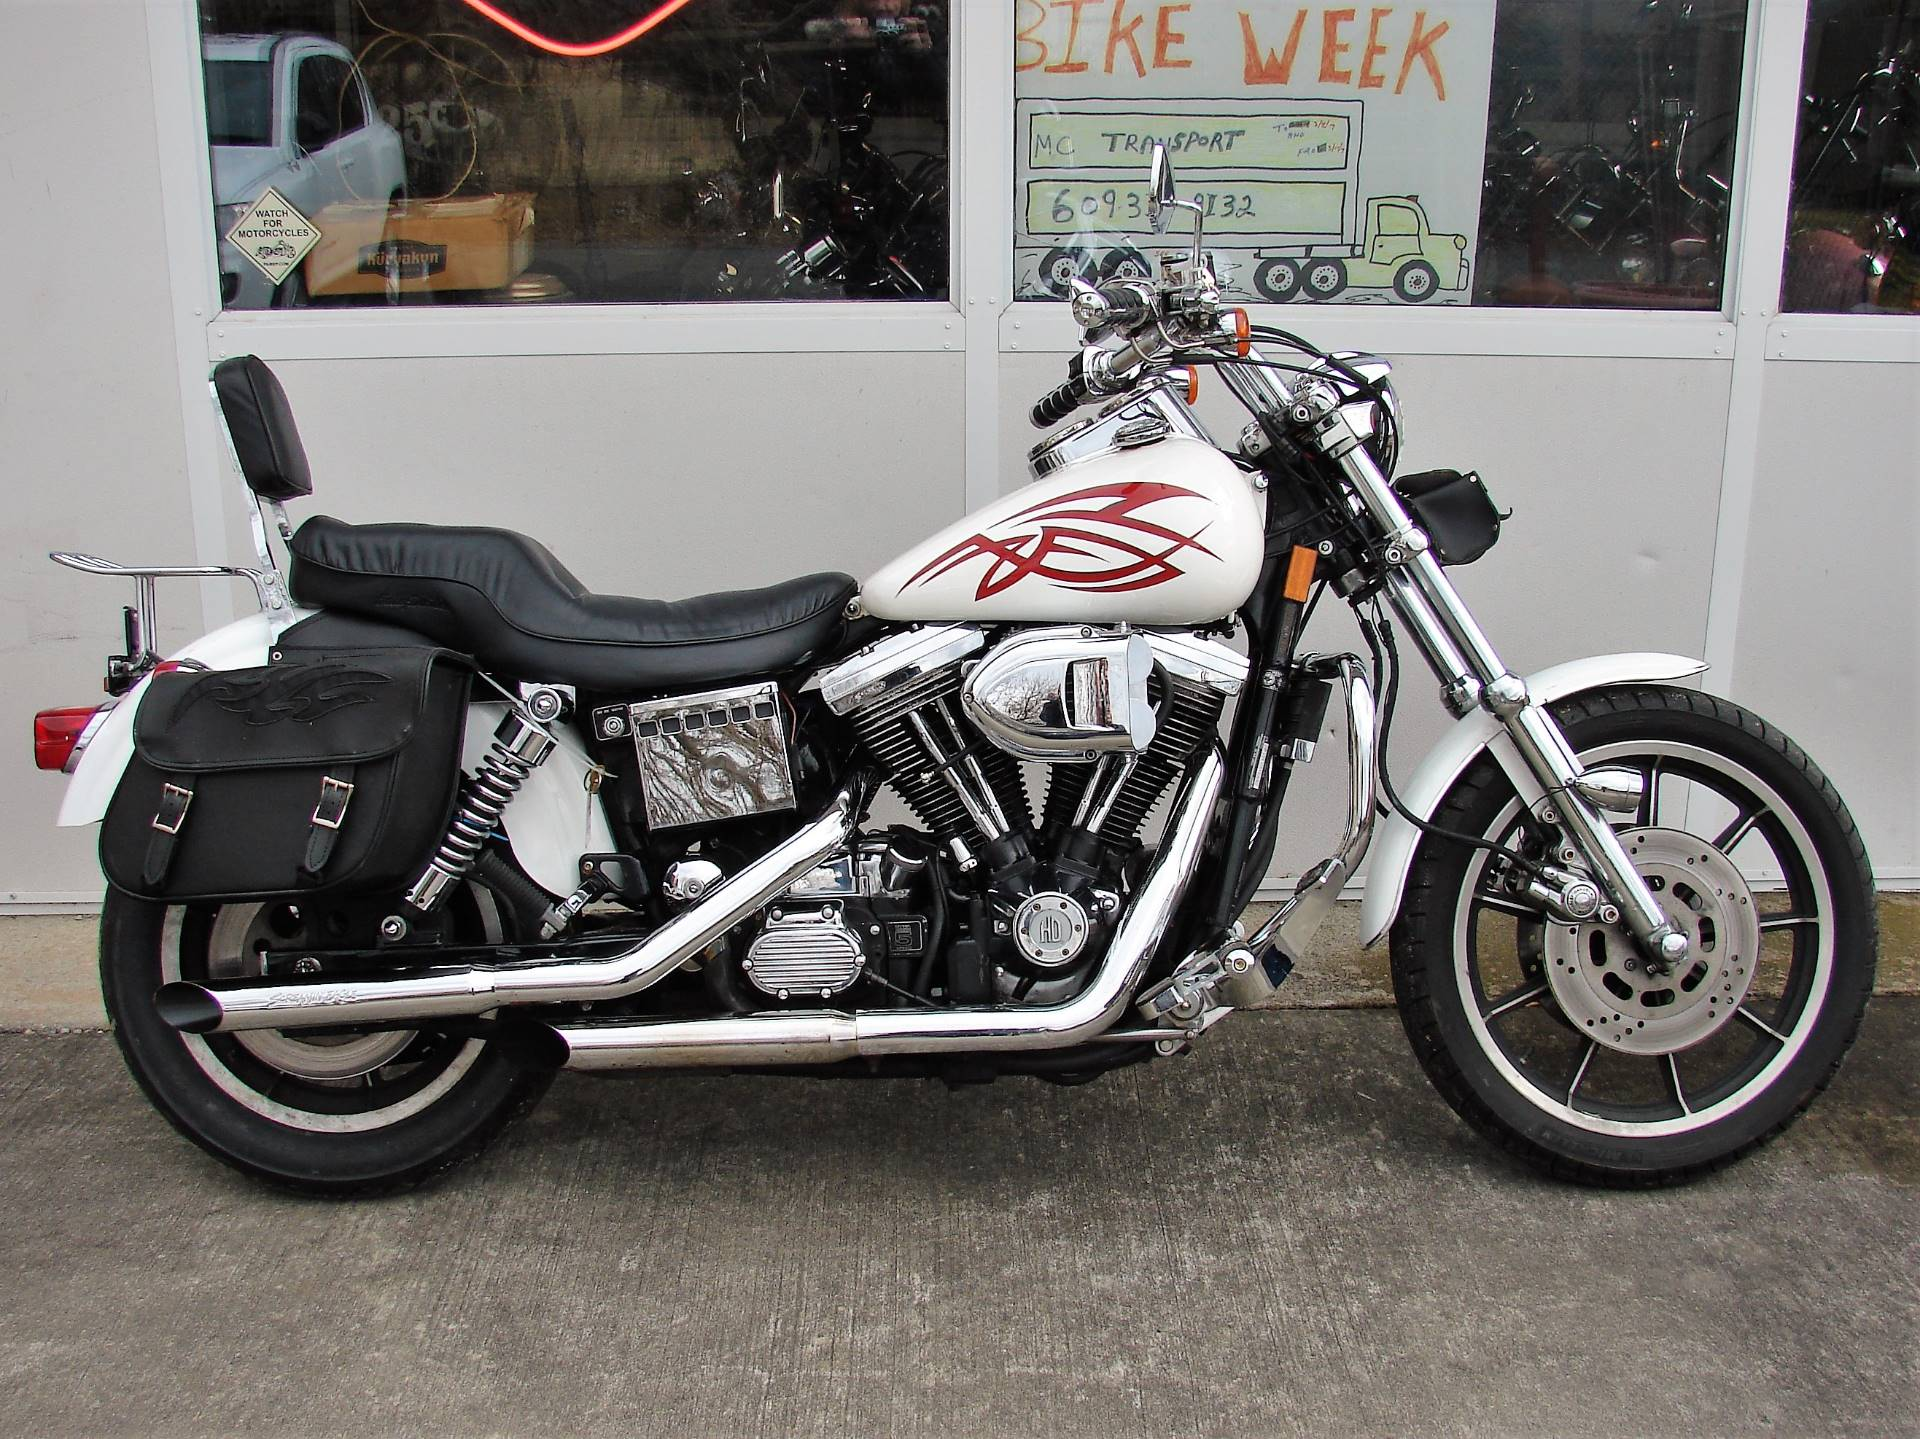 1995 Harley-Davidson Harley FXDL Dyna Low Rider  (White with Red Tribal) in Williamstown, New Jersey - Photo 8